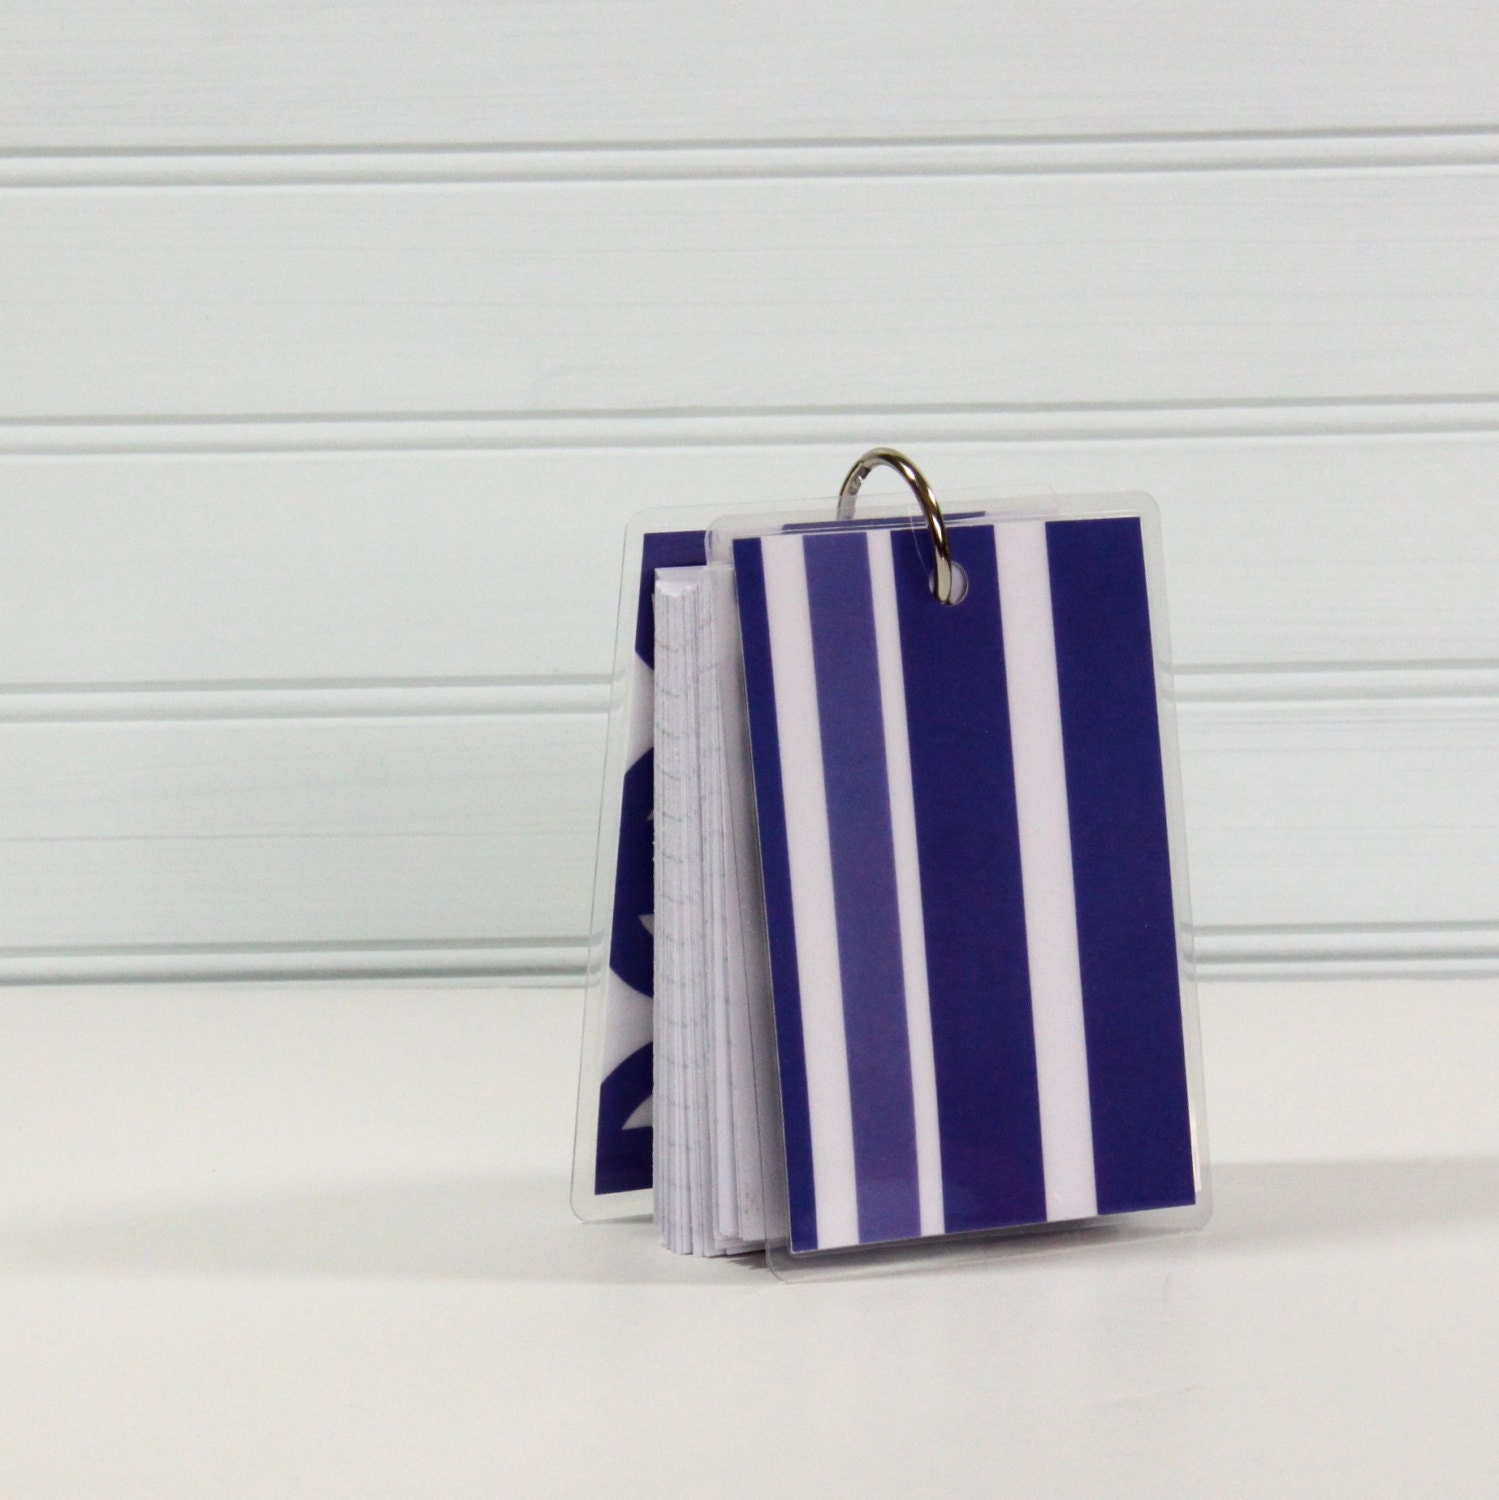 3 X 4 Note Card Ring Binder Mini Journal Blue By CrownBindery